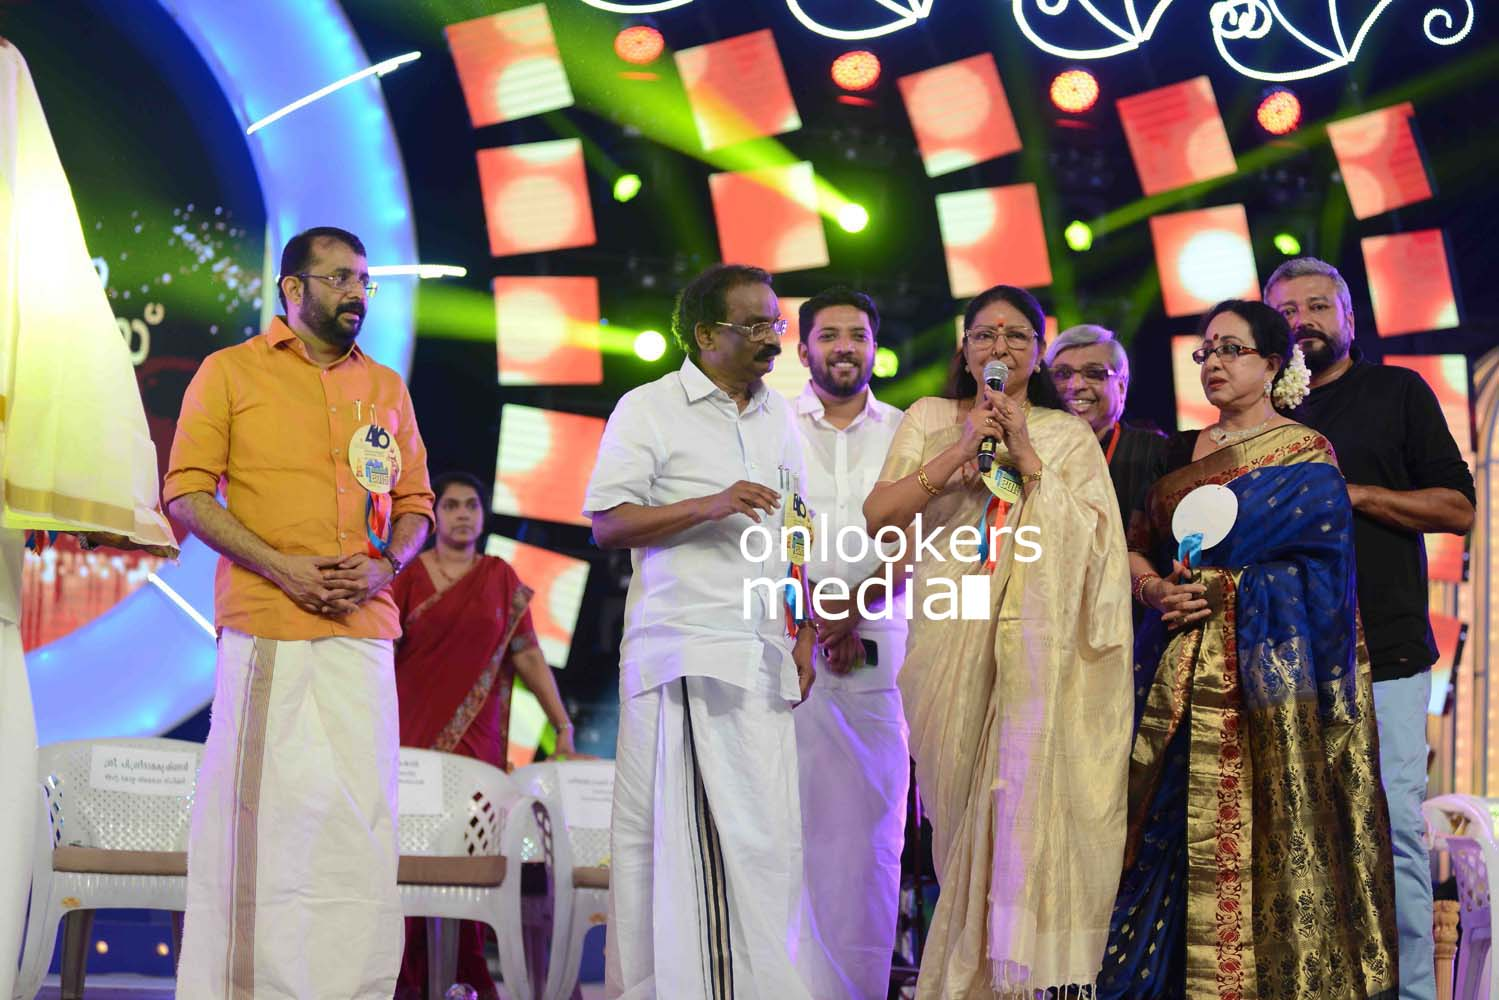 http://onlookersmedia.in/wp-content/uploads/2016/10/Kerala-State-Film-Awards-2015-stills-Photos-40.jpg